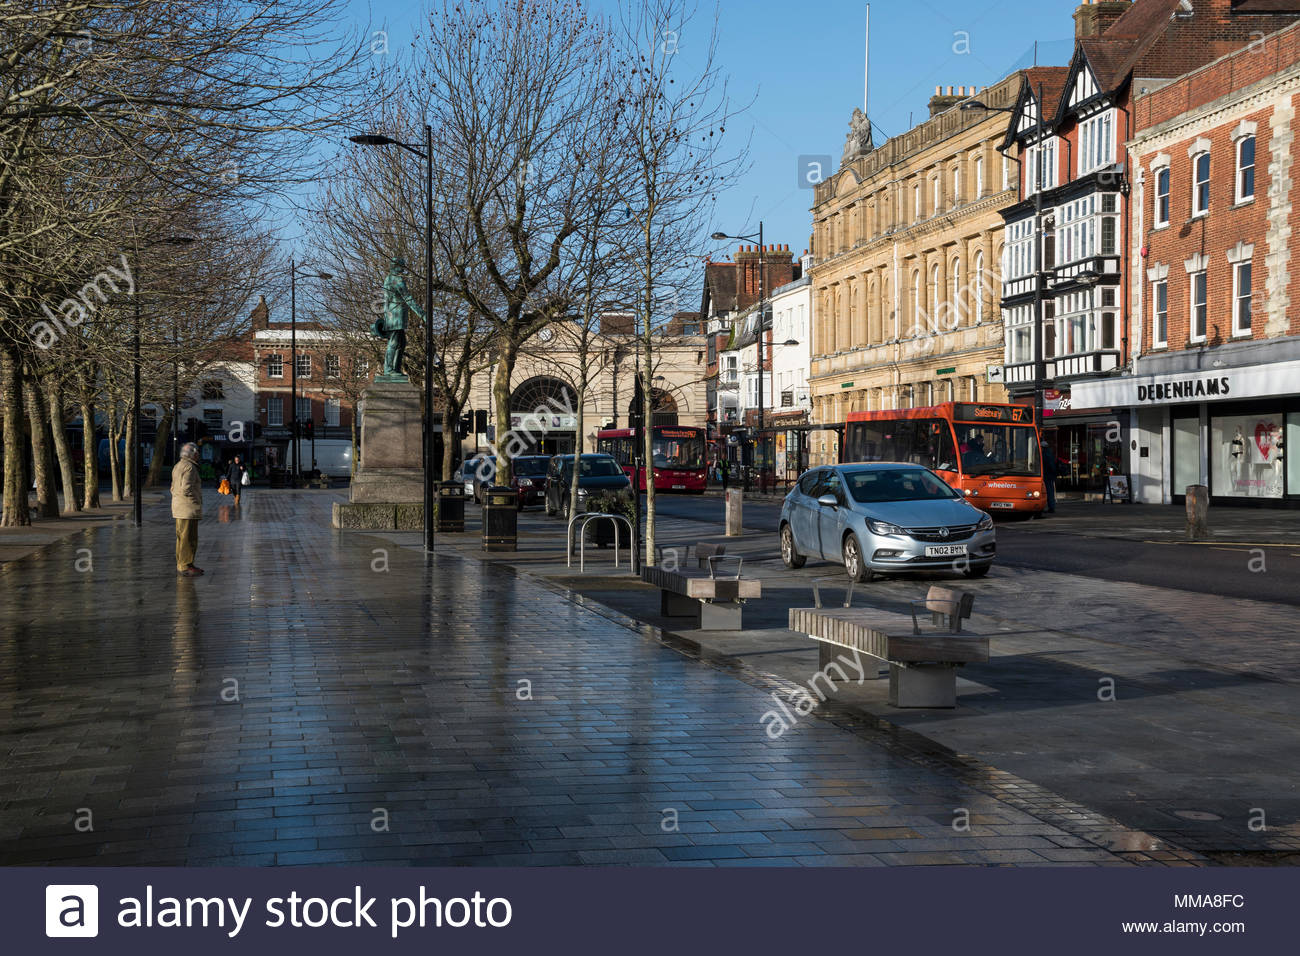 View of The Market Place and Blue Boar Row, Salisbury, Wiltshire, England, UK - Stock Image